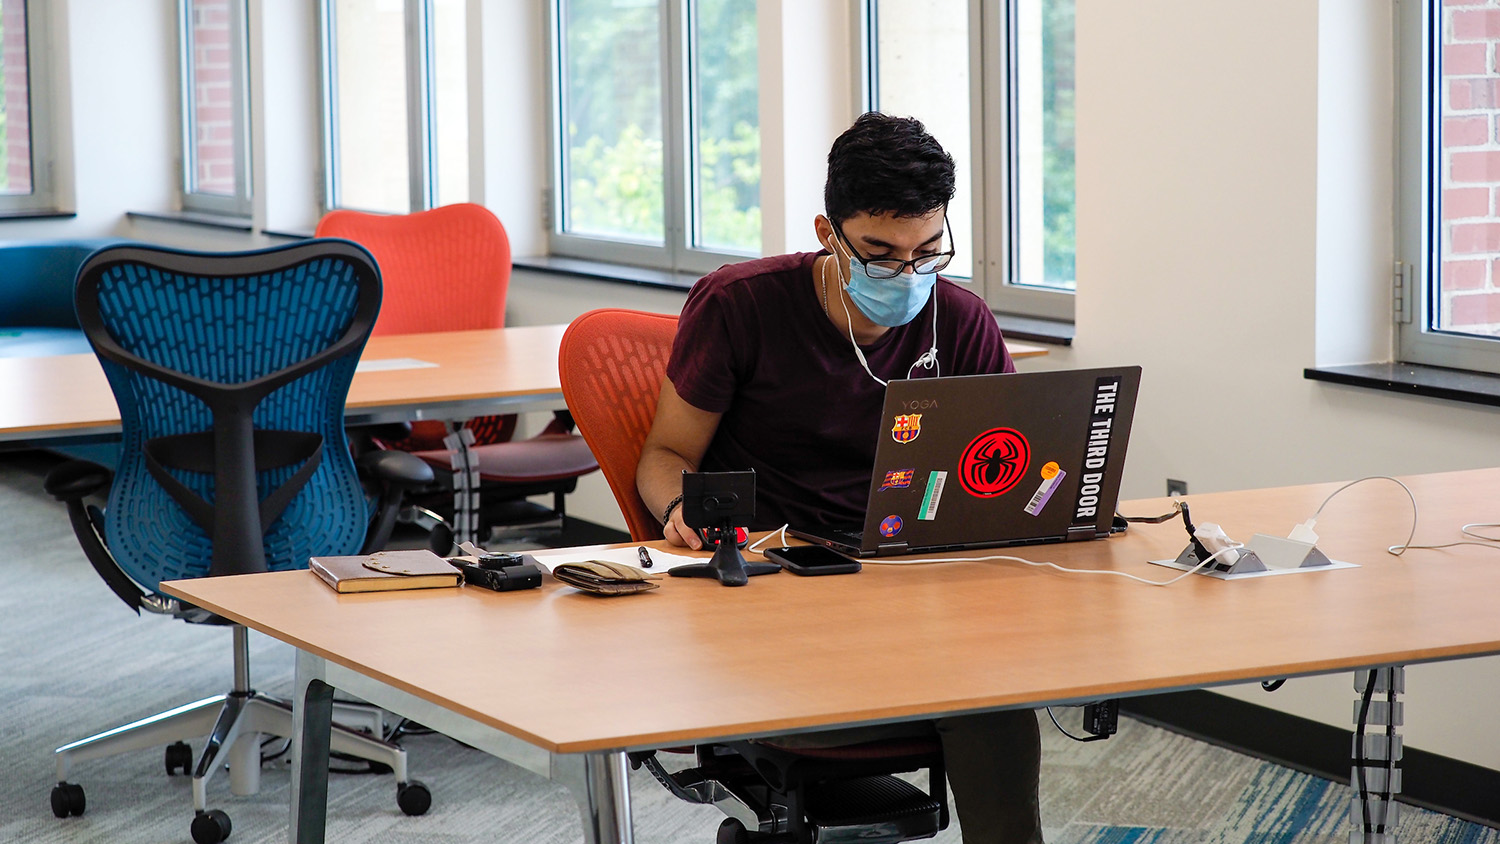 Students returned to campus for the fall 2020 semester to find portions of the DH Hill Library renovated and ready for socially distant studying.